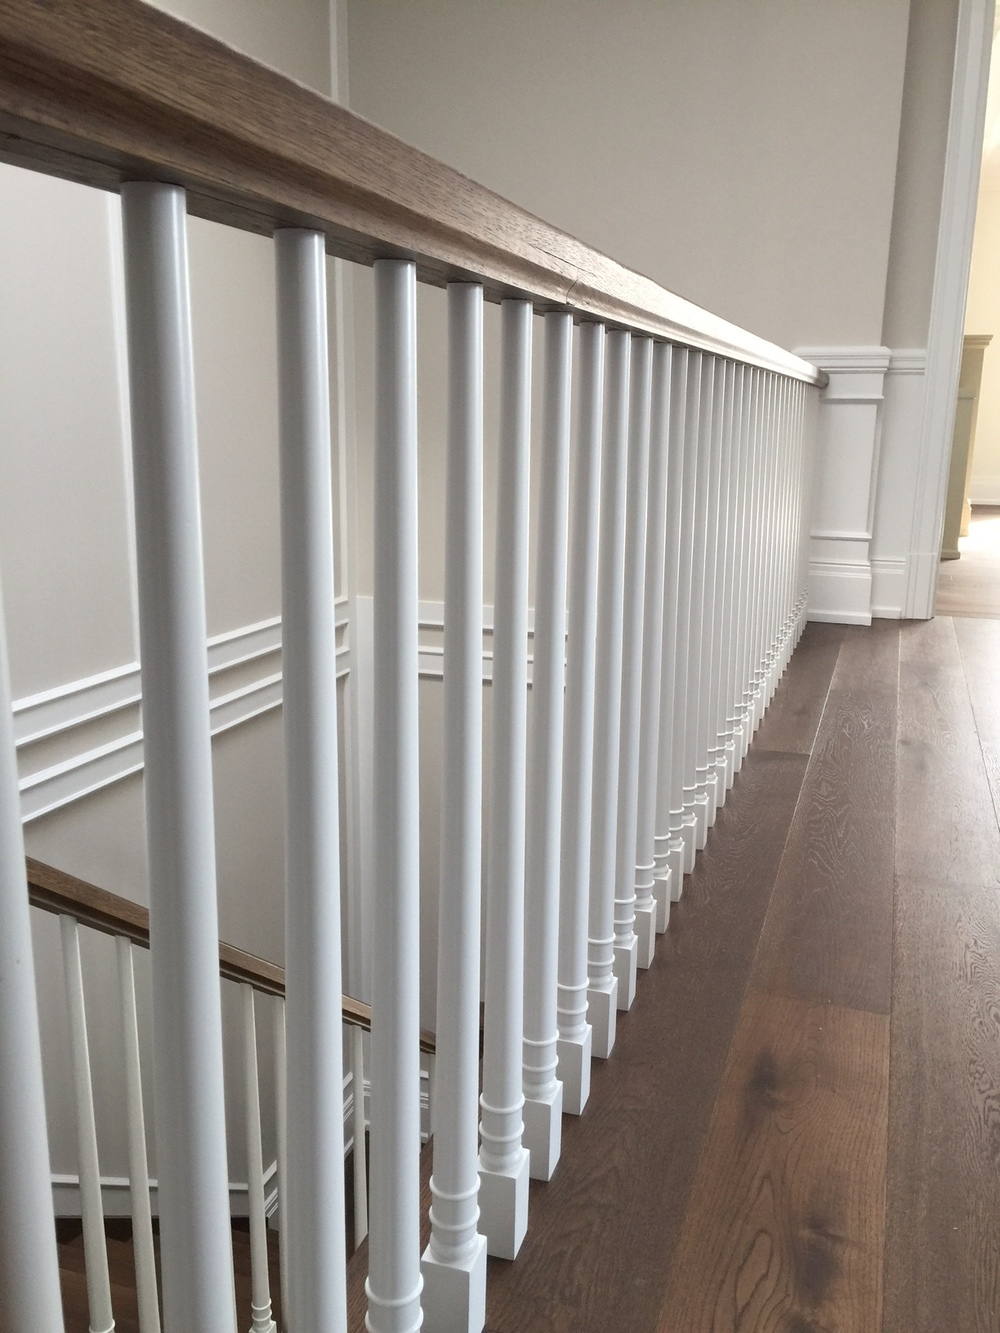 We manufacture custom   stairs, railings, posts, nosings and more.